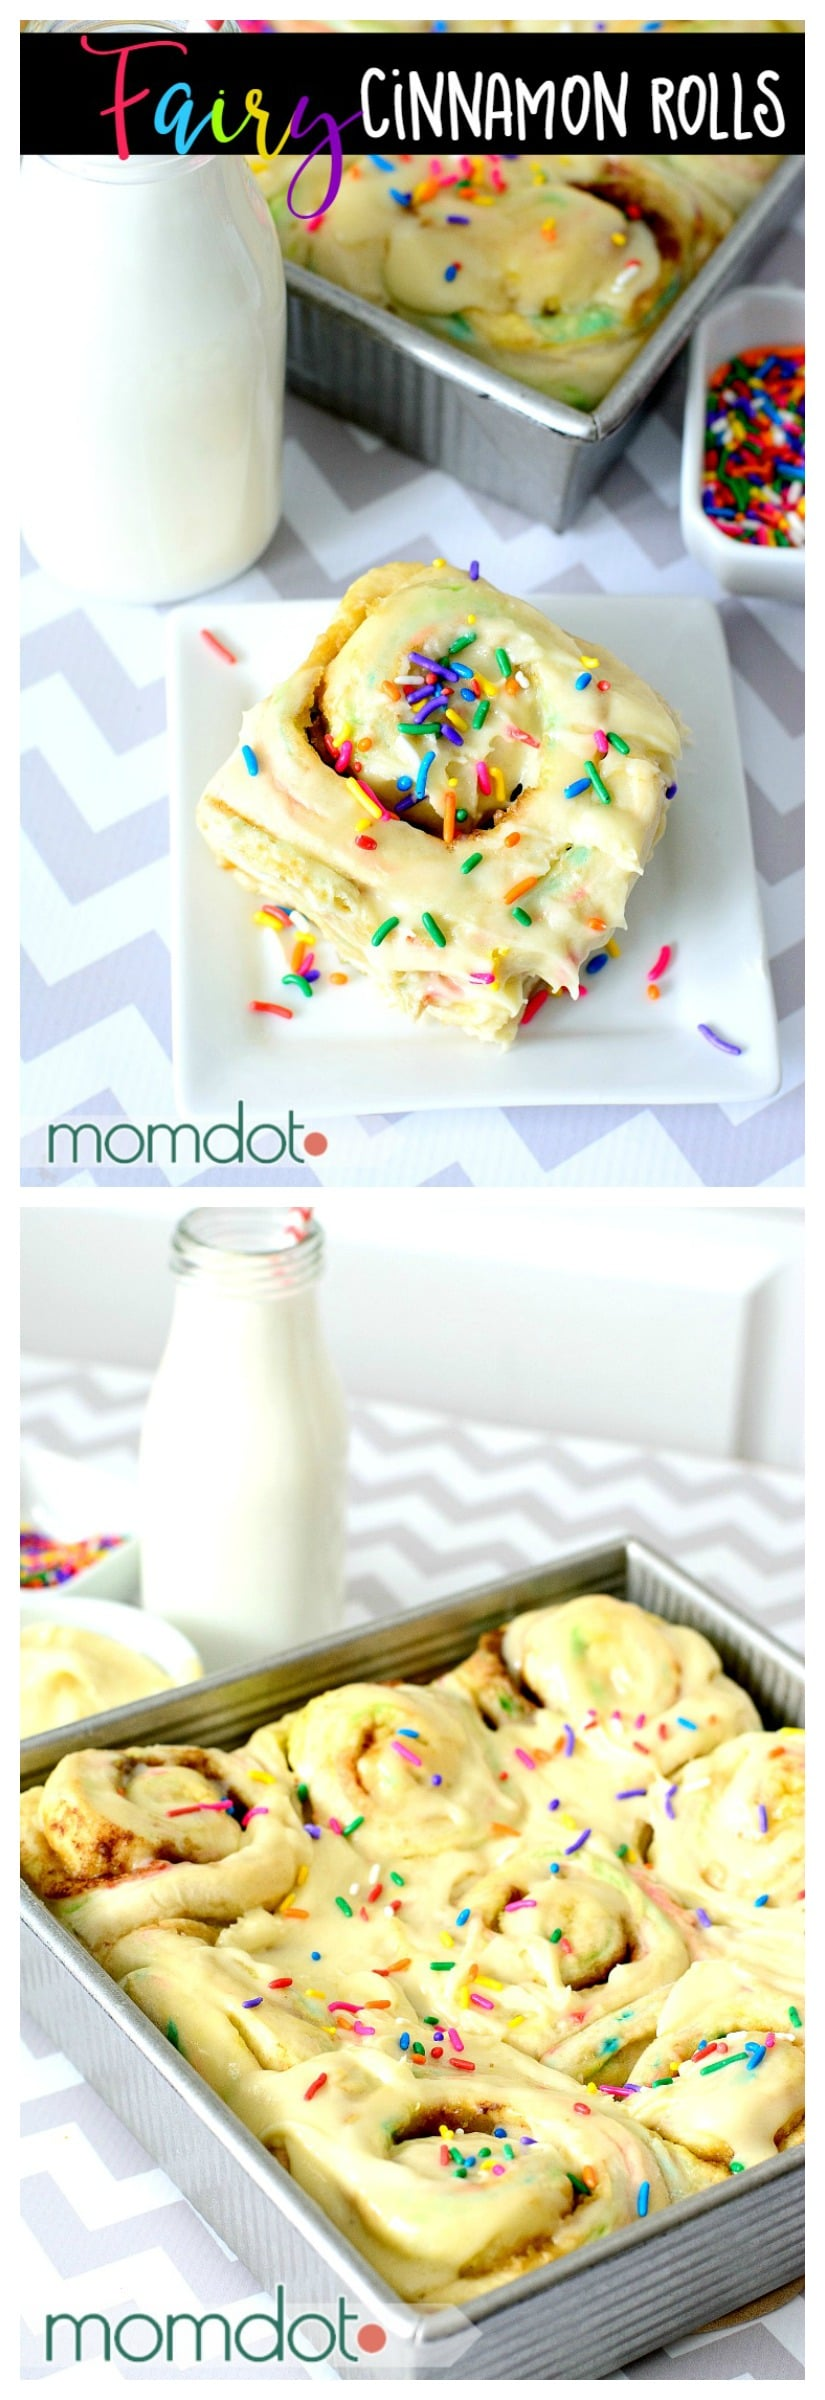 Fairy Cinnamon Roll Recipe: Funfetti Breakfast Roll Recipe, Birthday Breakfast with Cake Frosting!